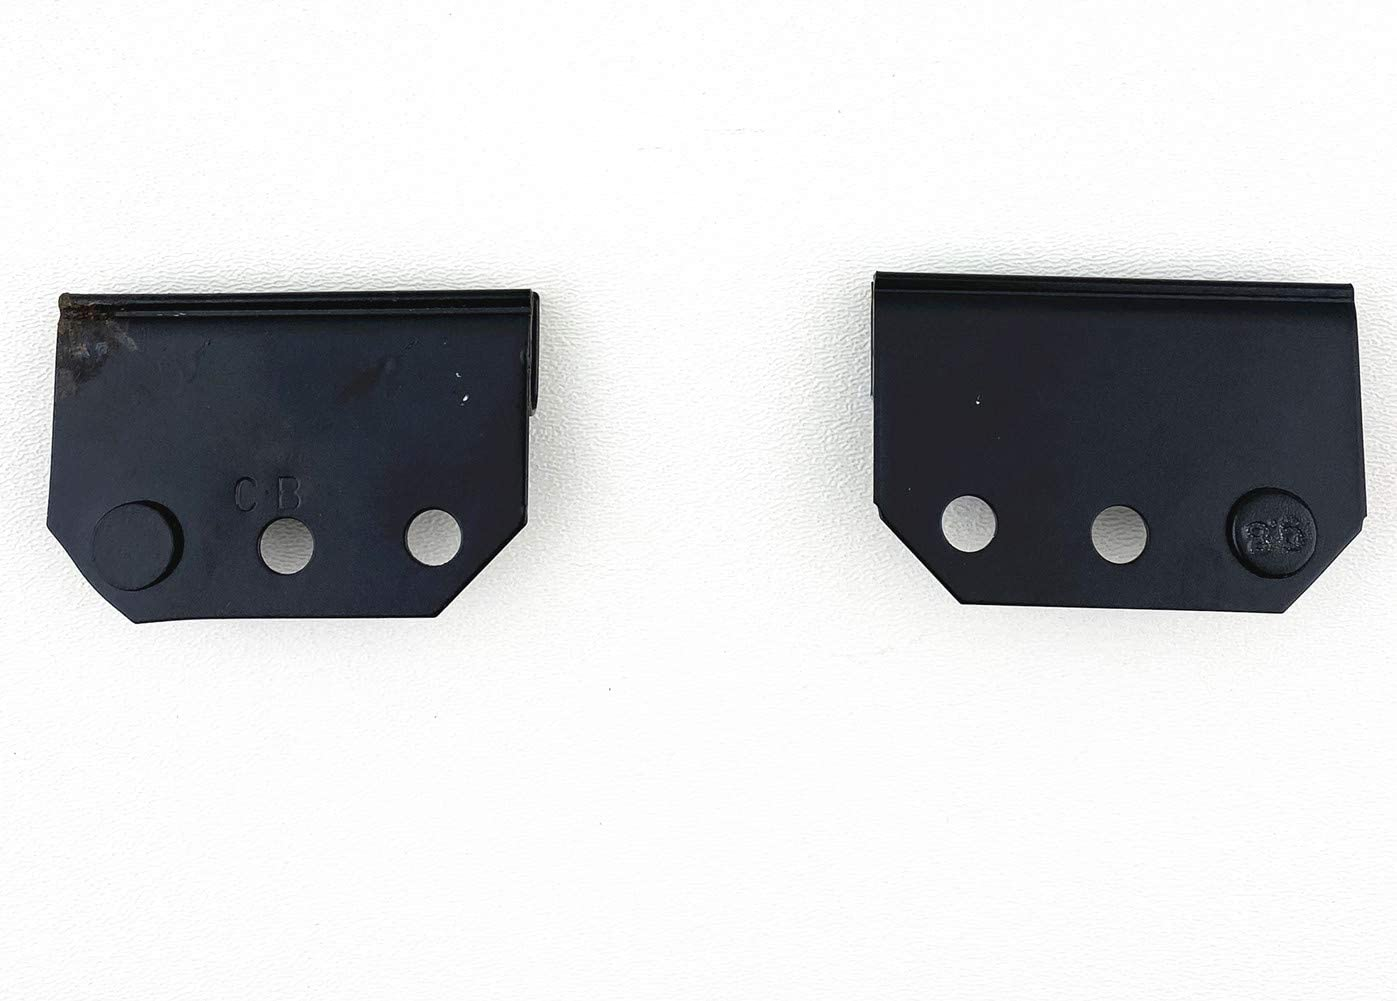 Power /& Manual NAGD Auto Glass Channel Clips Compatible with 2002-2008 Dodge Ram 1500 2003-2009 2500 3500 2007-2010 4500 5500 Door Window Glass